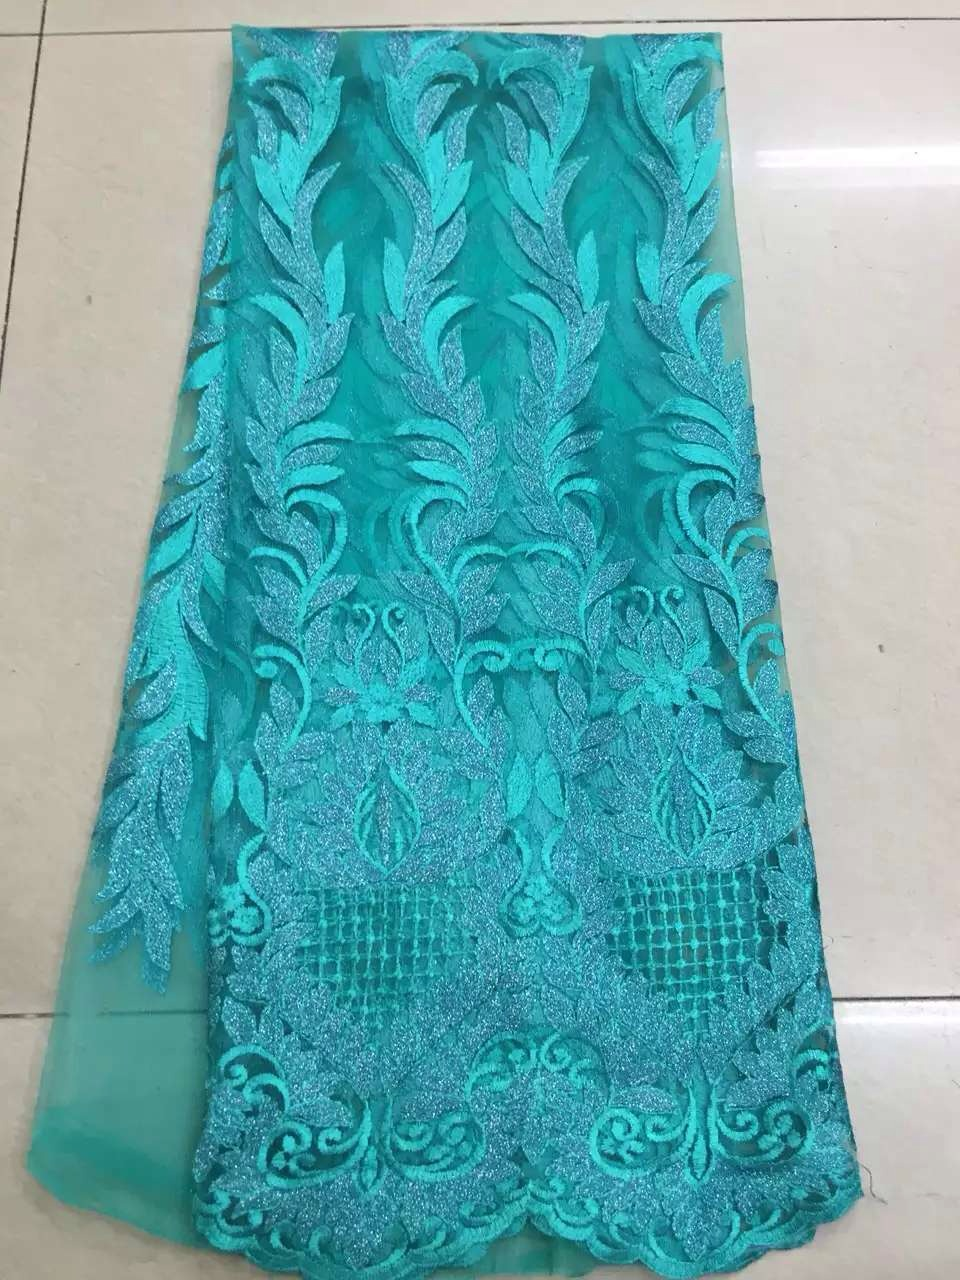 High Quality Nigerian Lace Fabrics 2016 With Stones African French Net Lace Fabric Embroidered Tulle Mesh Fabric For Party D4883(China (Mainland))